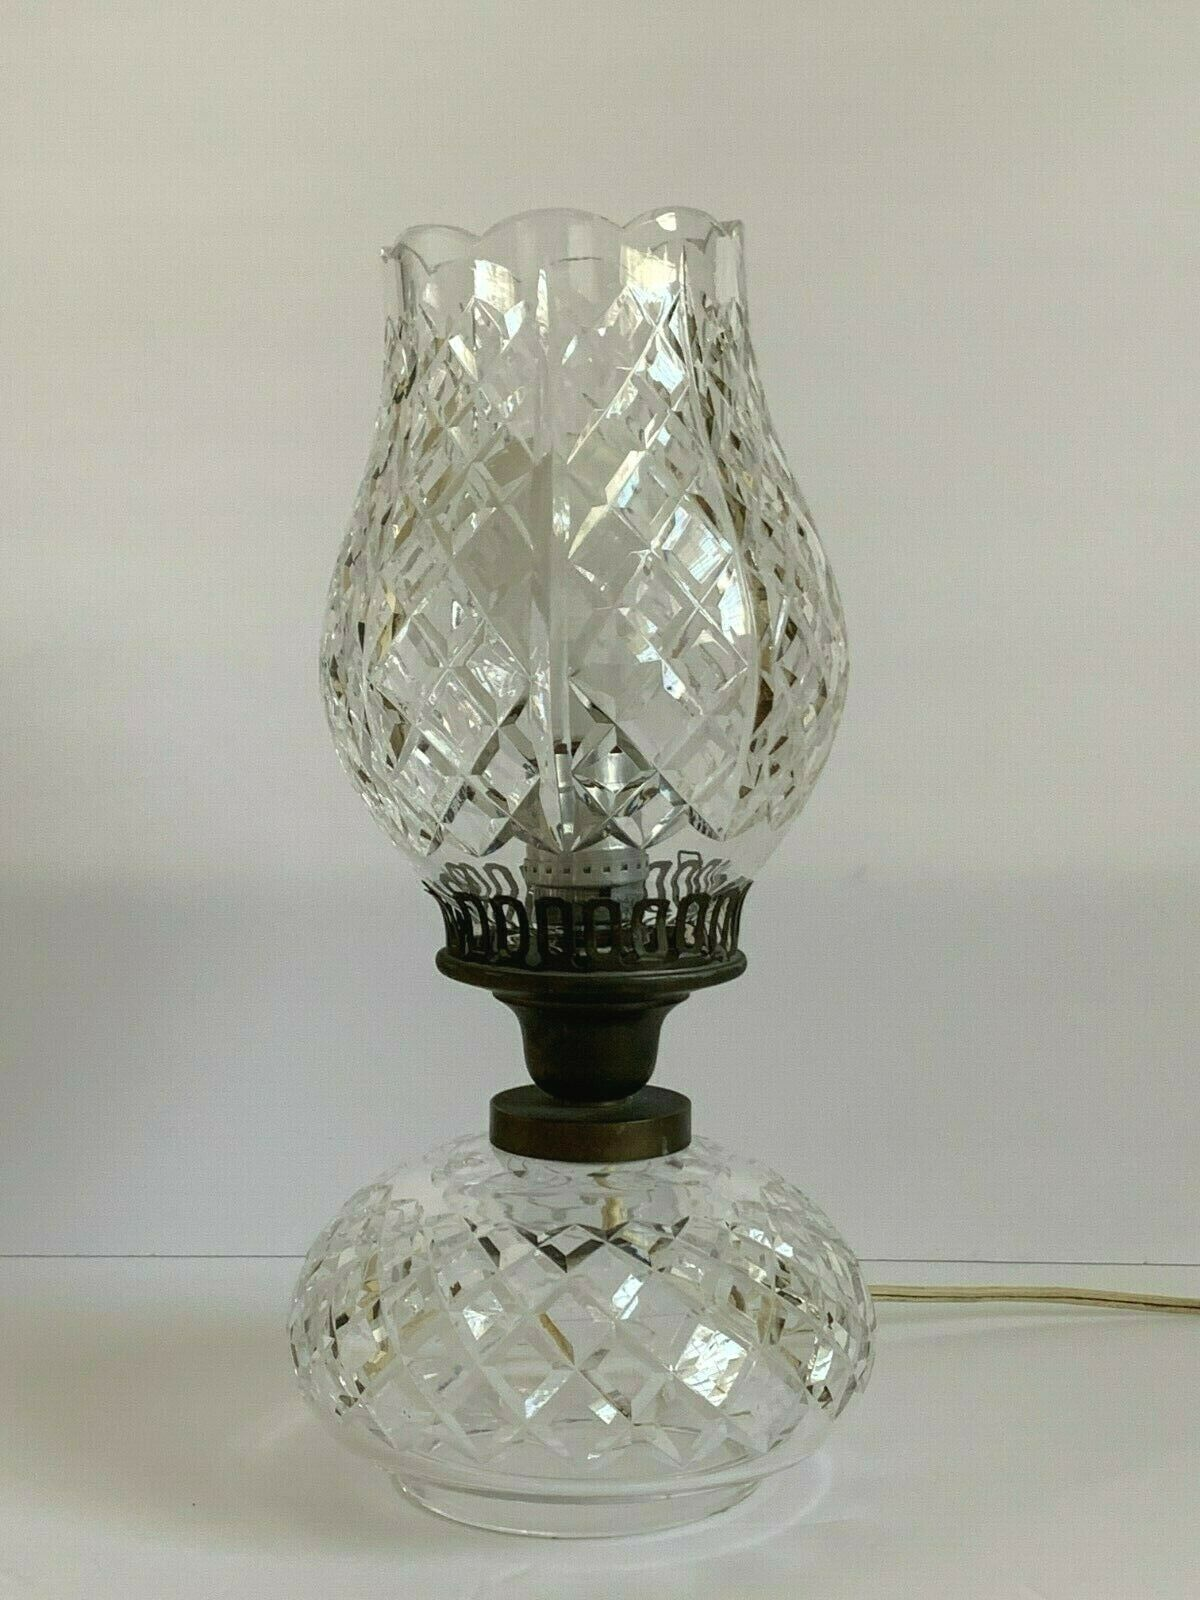 Primary image for Vintage Waterford Crystal Tulip Top Shaped Shade Hurricane Electrical Table Lamp